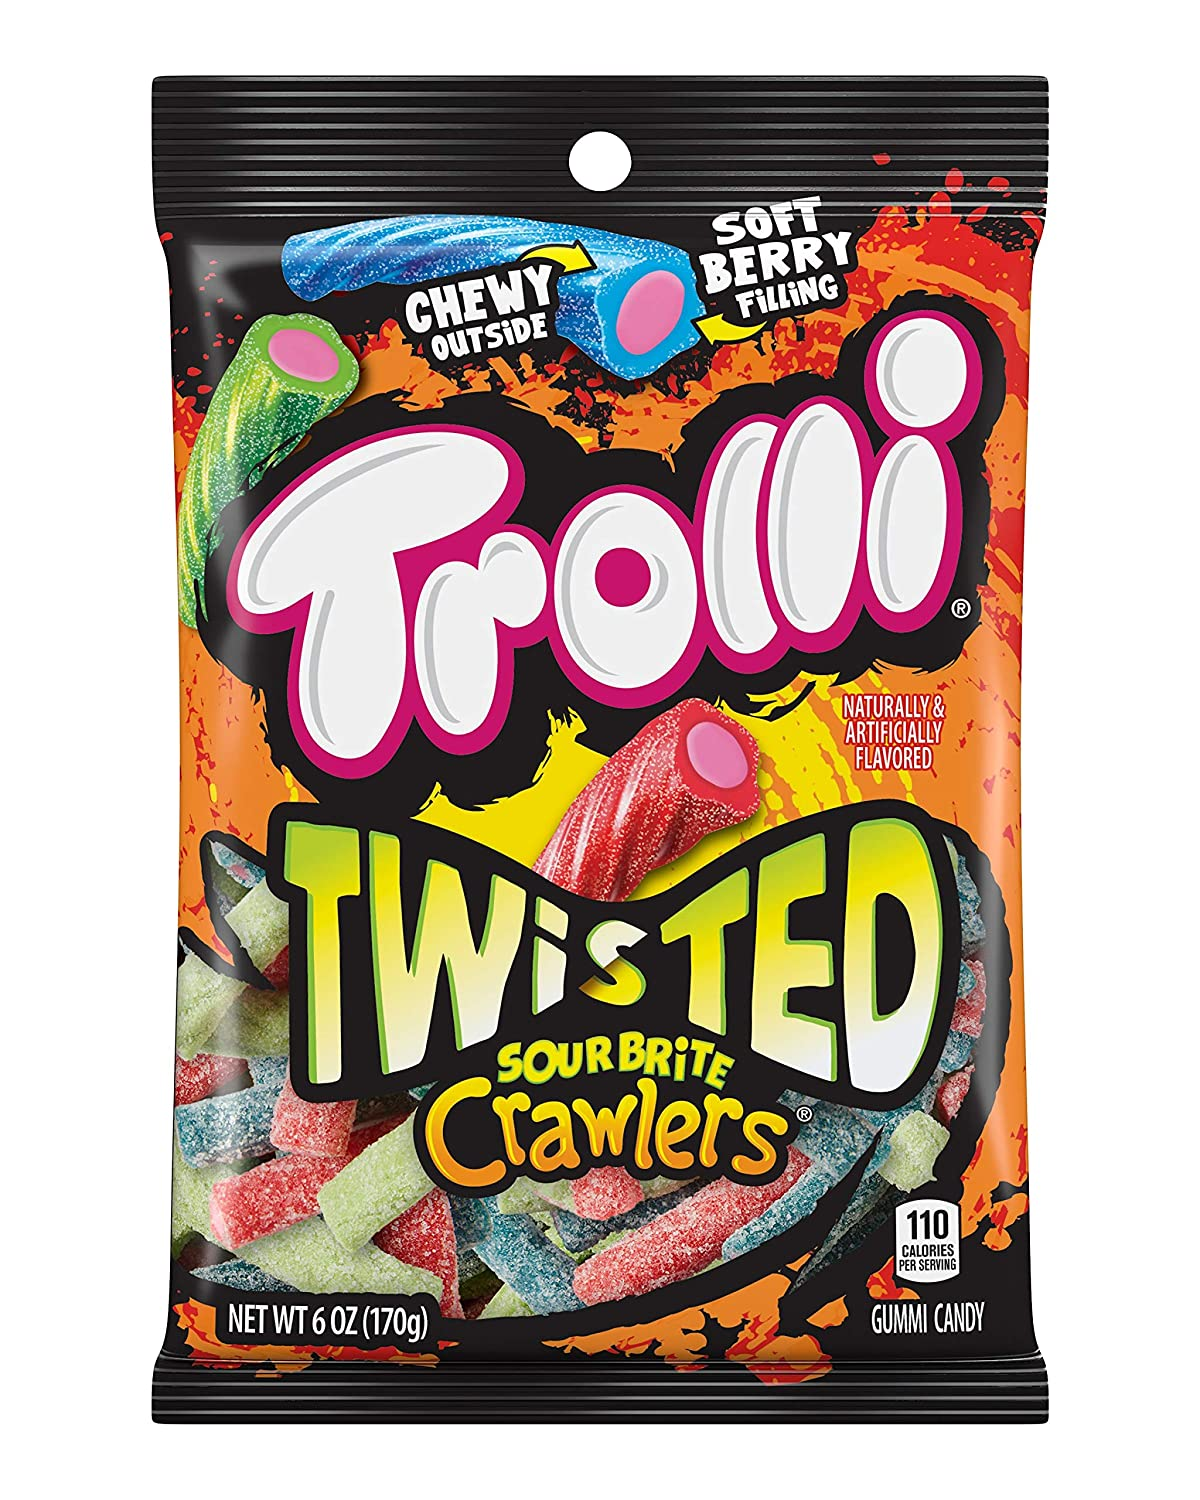 88fd6077015 Amazon.com   Trolli Twisted Sour Brite Crawlers Gummy Candy ...